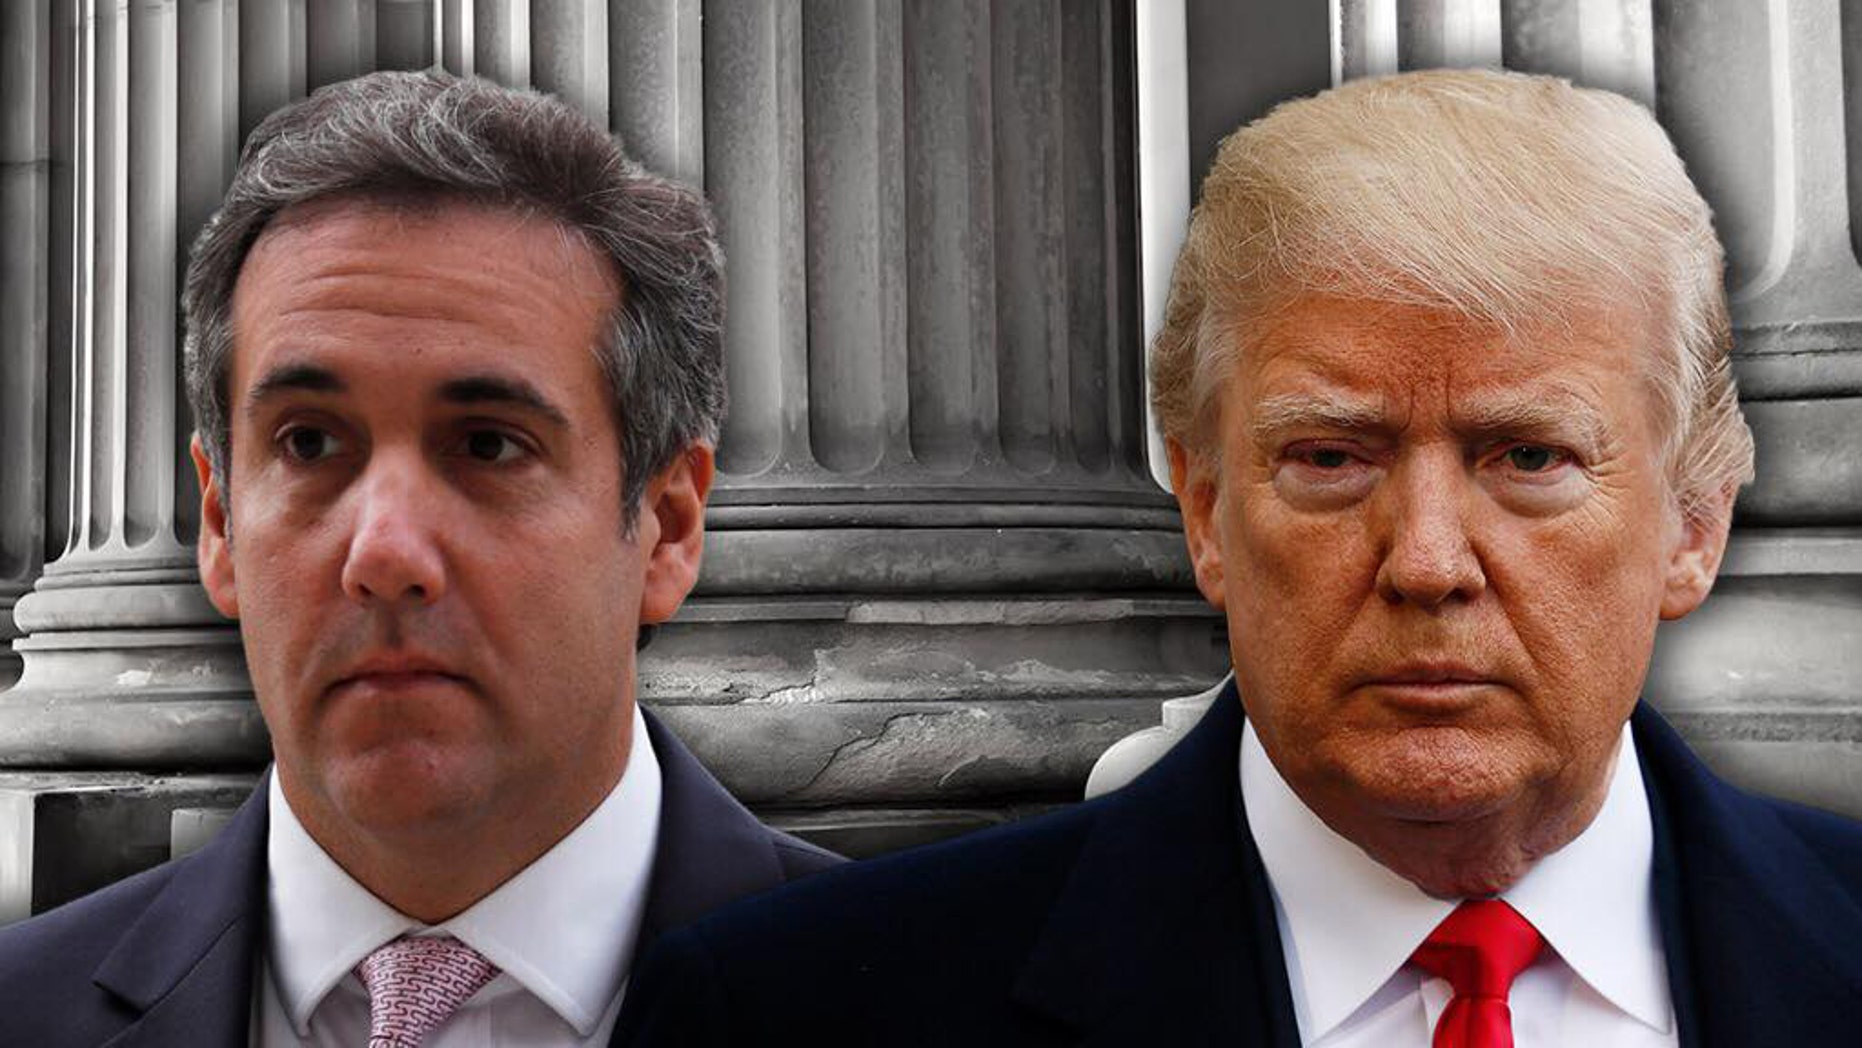 Michael Cohen, left, a former personal lawyer for President Trump, is awaiting sentencing after pleading guilty to campaign-finance and fraud charges.